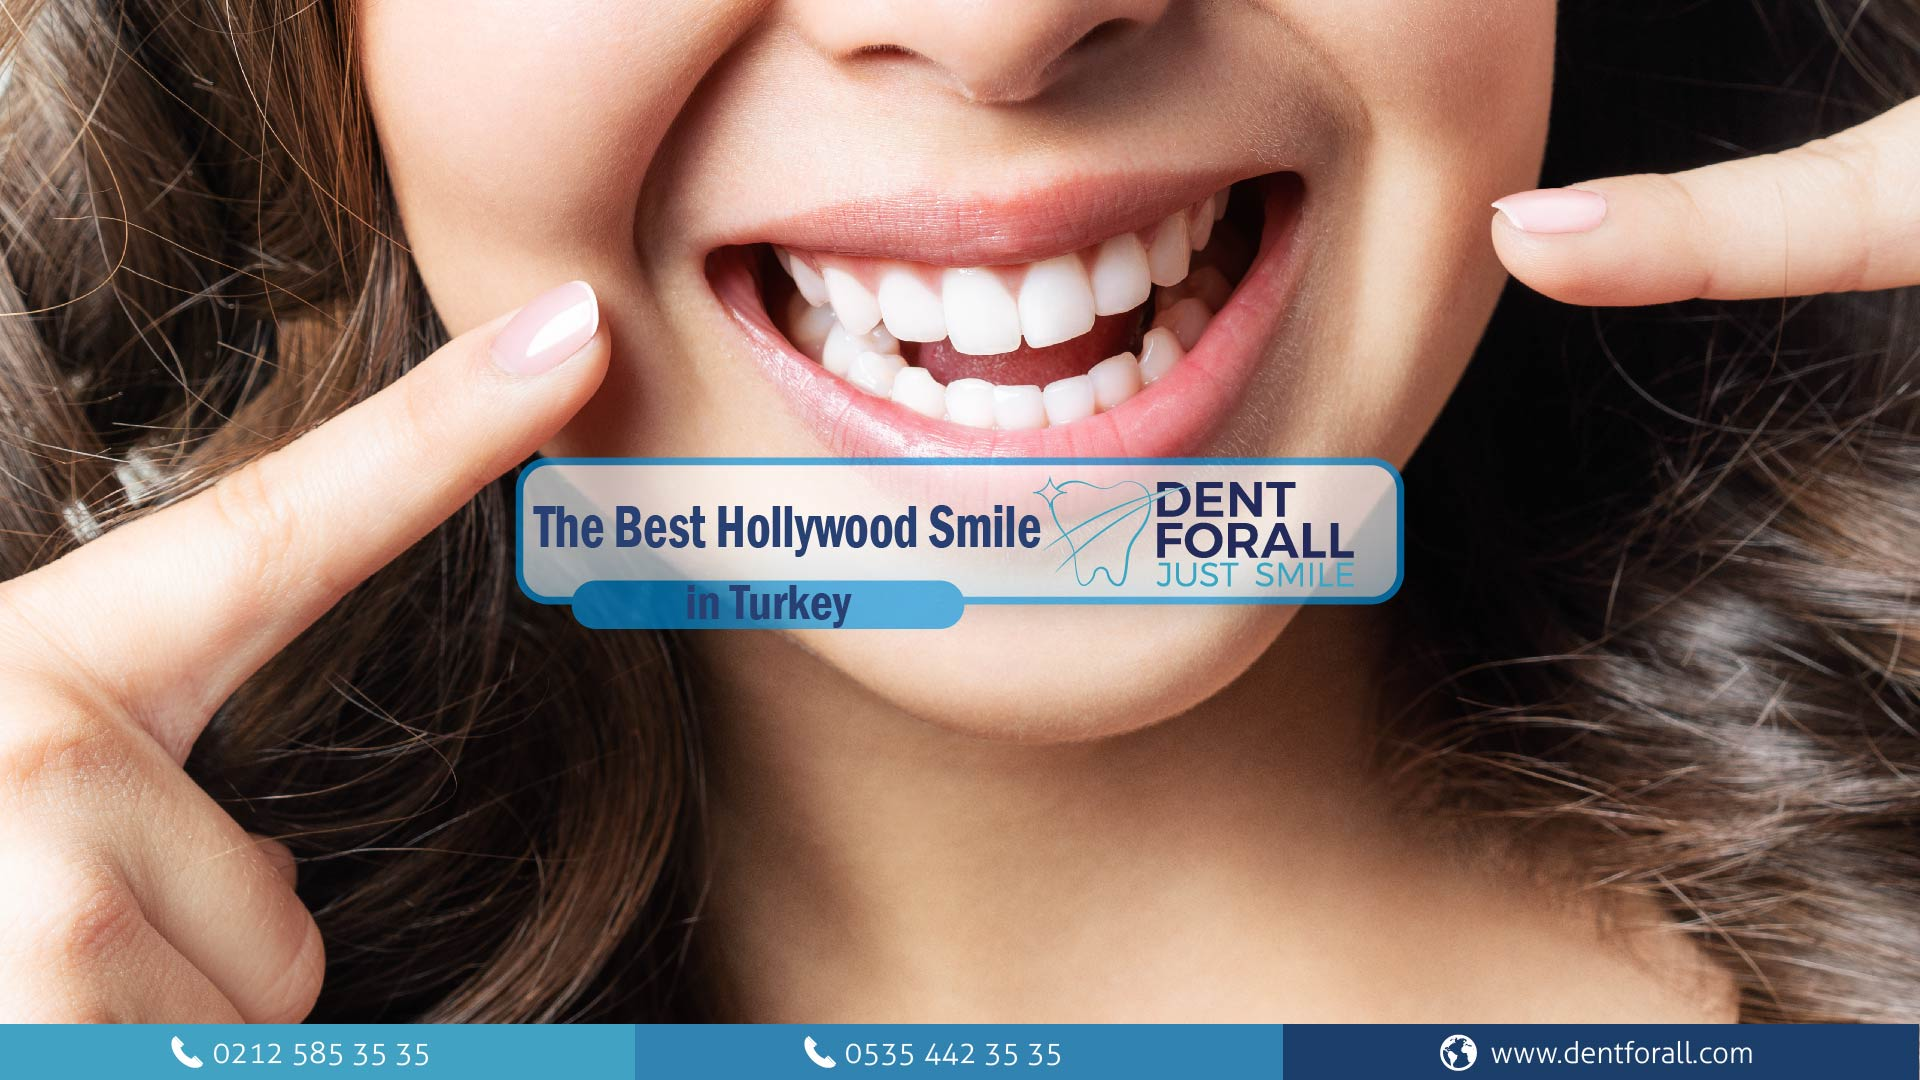 Hollywood Smile AND How to prepare teeth to get a Hollywood smile